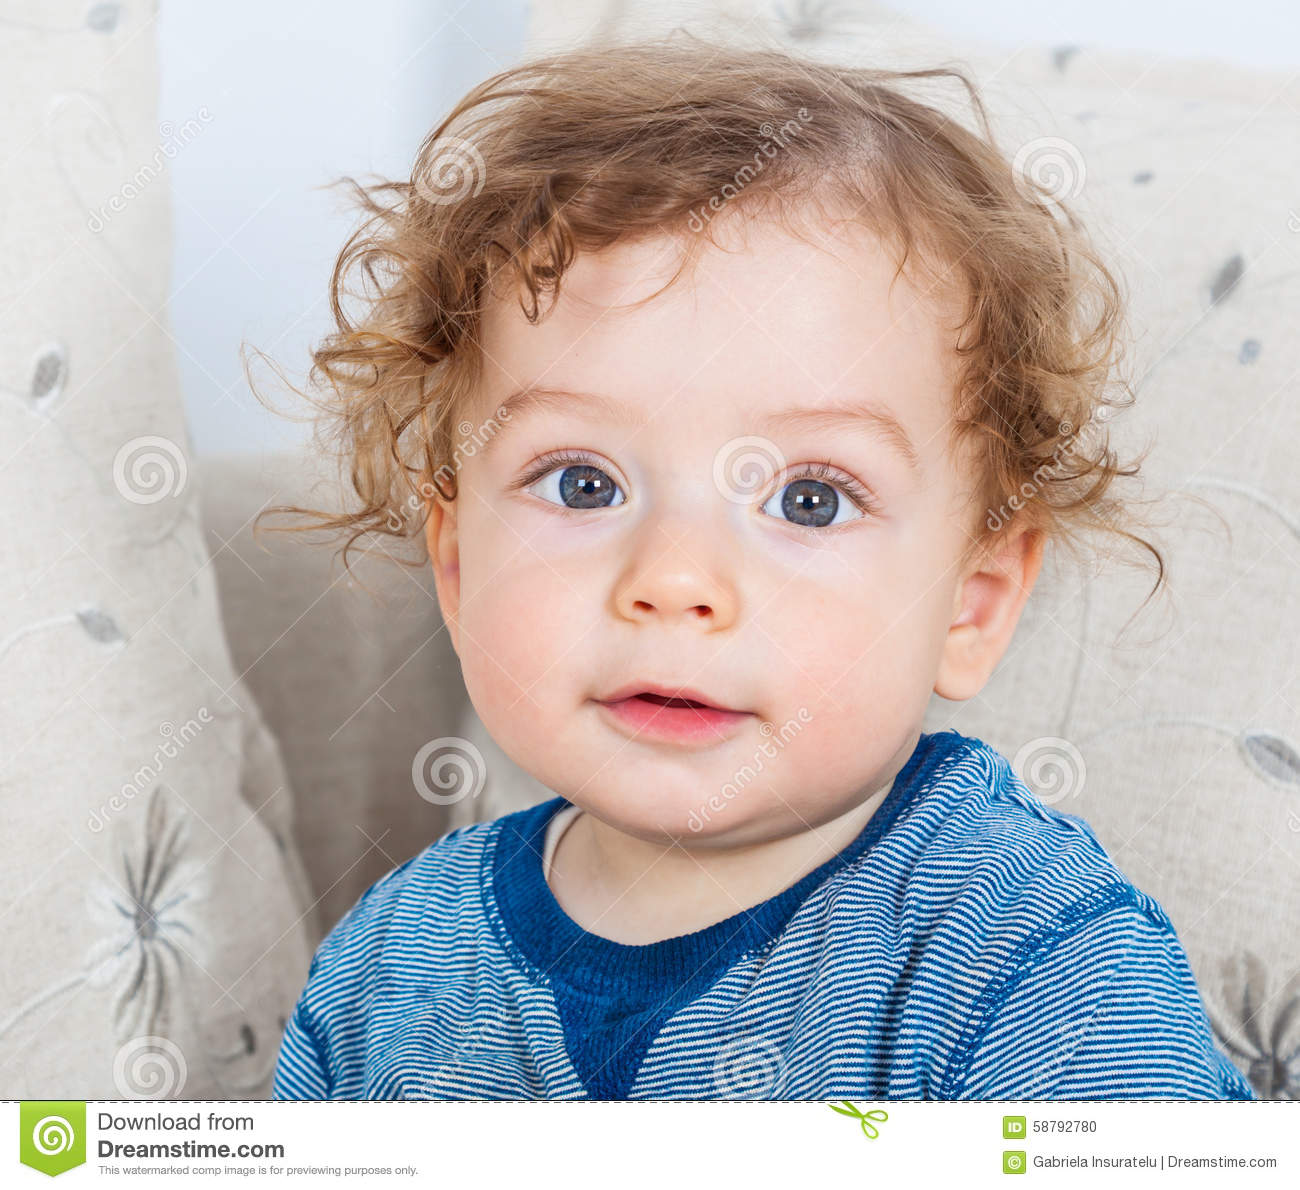 Baby Boy With Curly Hair Stock Photo Image Of Emotion 58792780